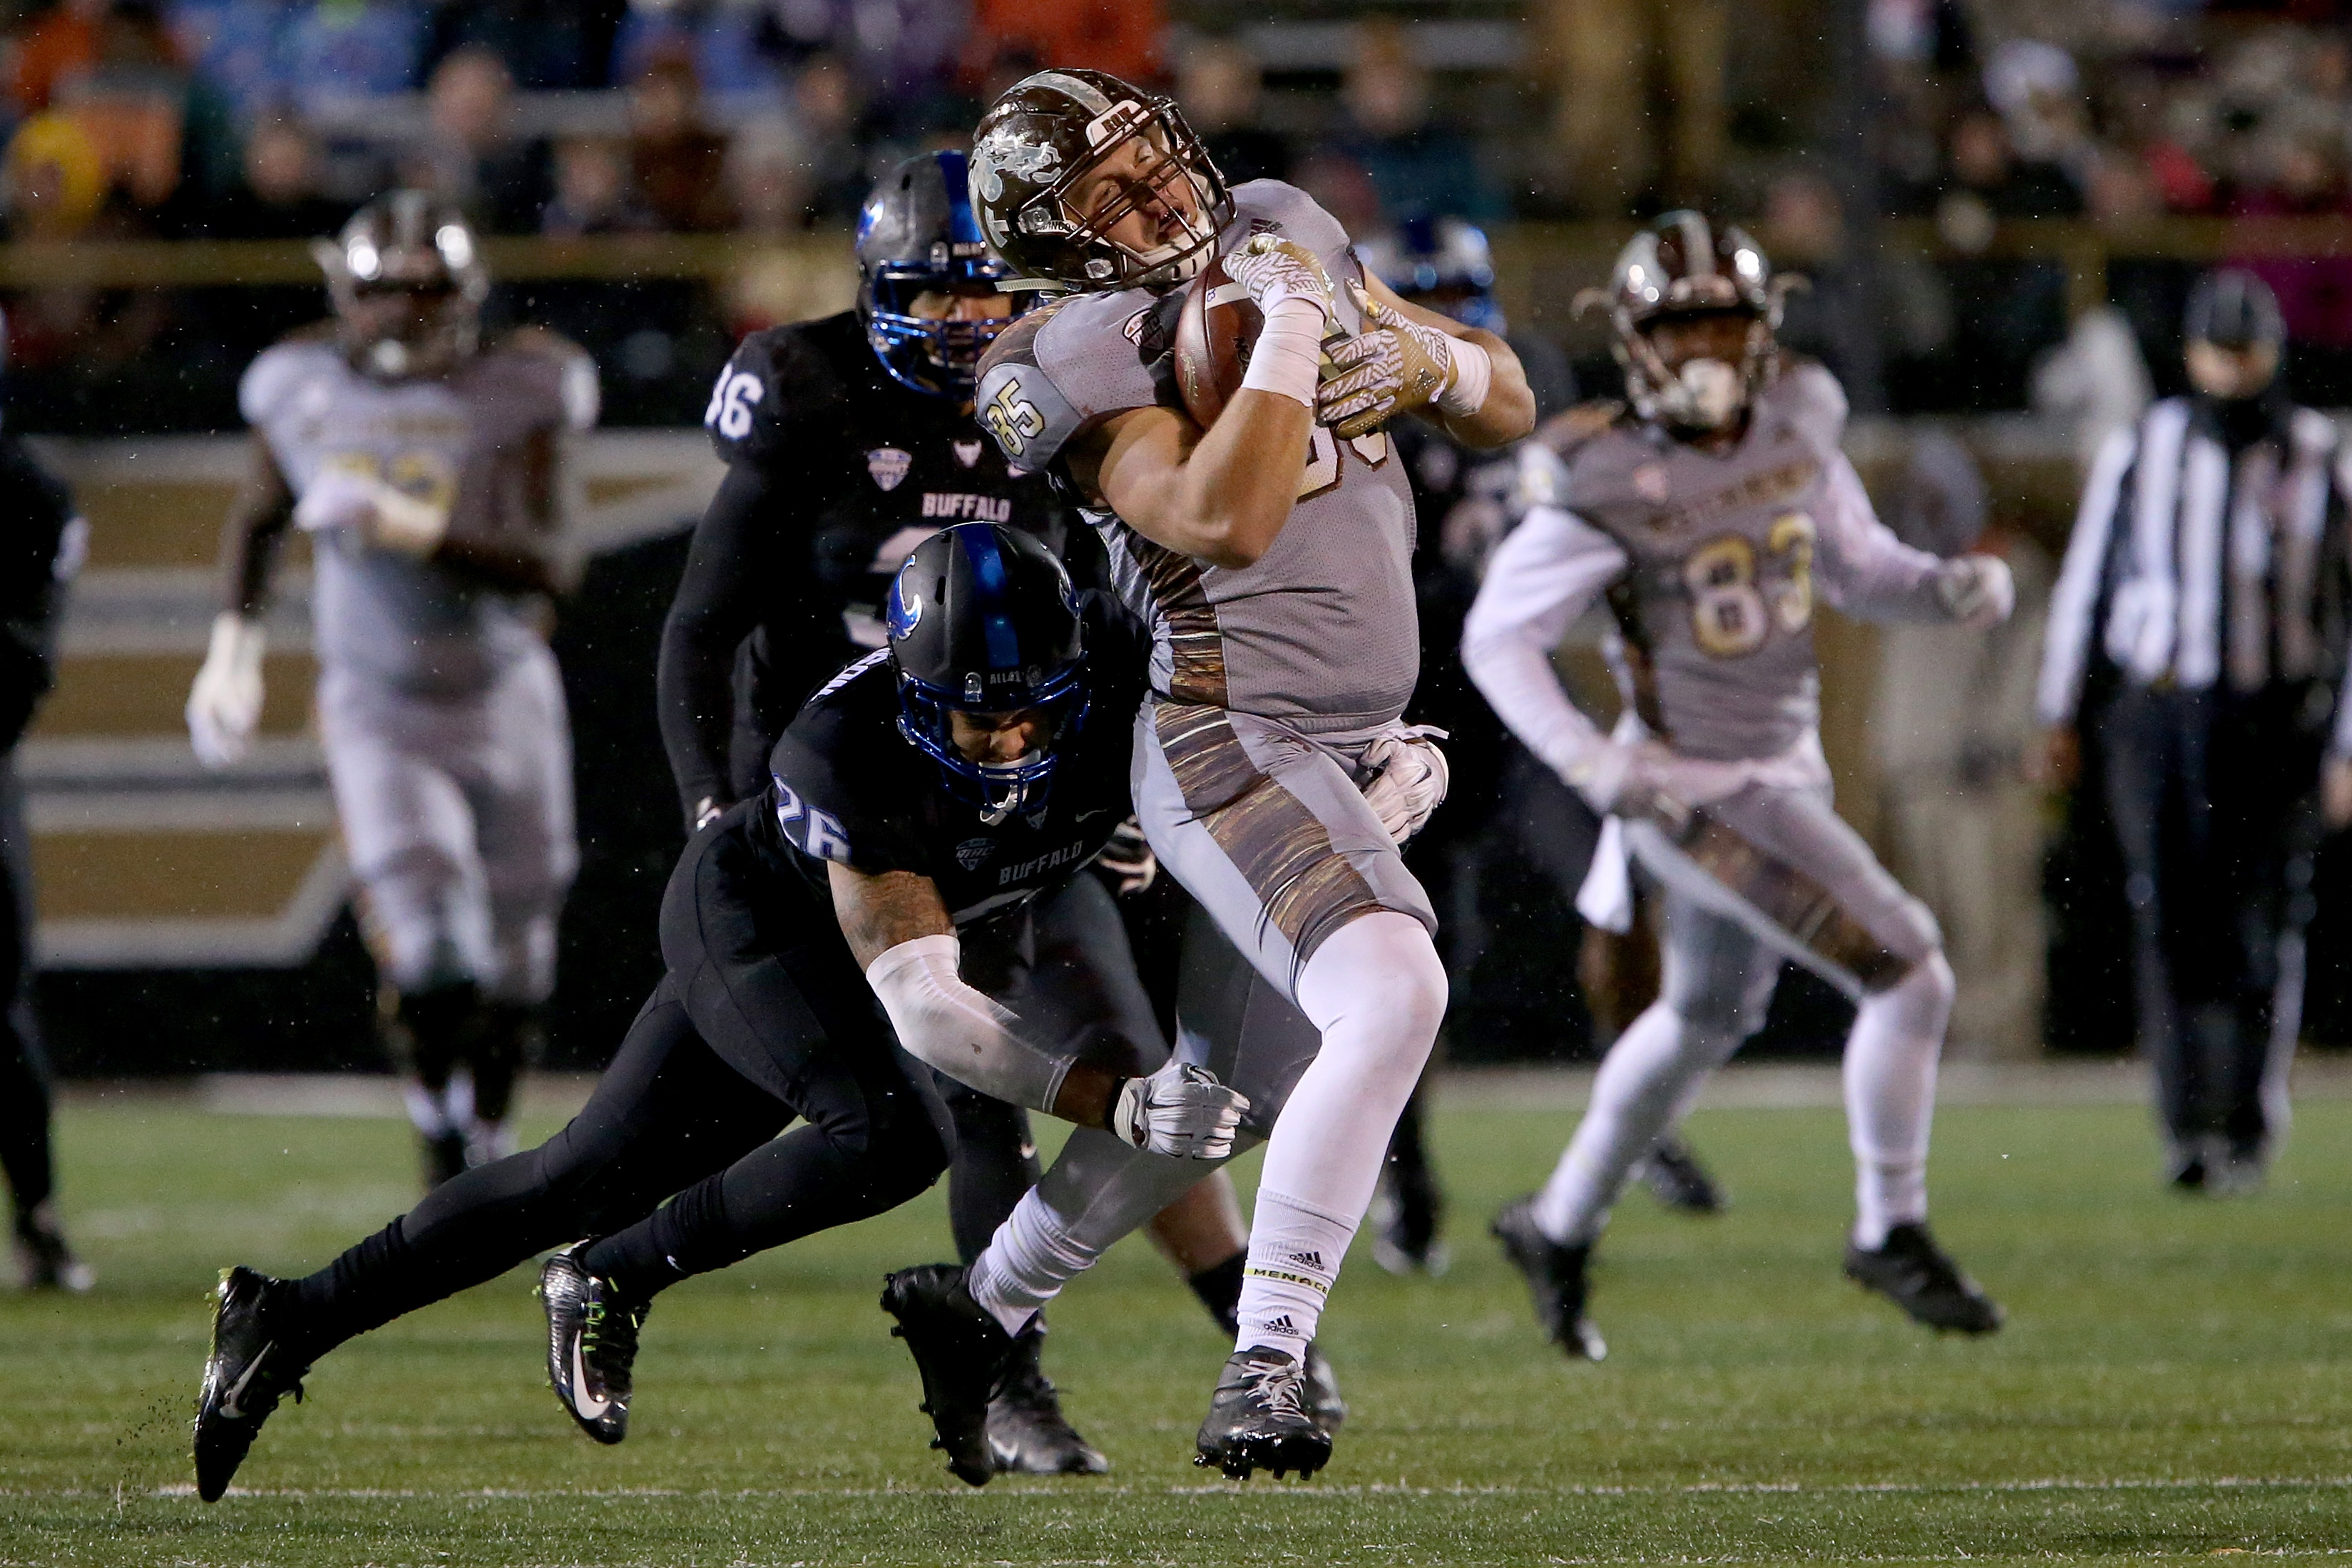 Western Michigan's Donnie Ernsberger makes a catch in front of Buffalo's Ryan Williamson in the third quarter at Waldo Stadium. (Photo by Dylan Buell/Getty Images)